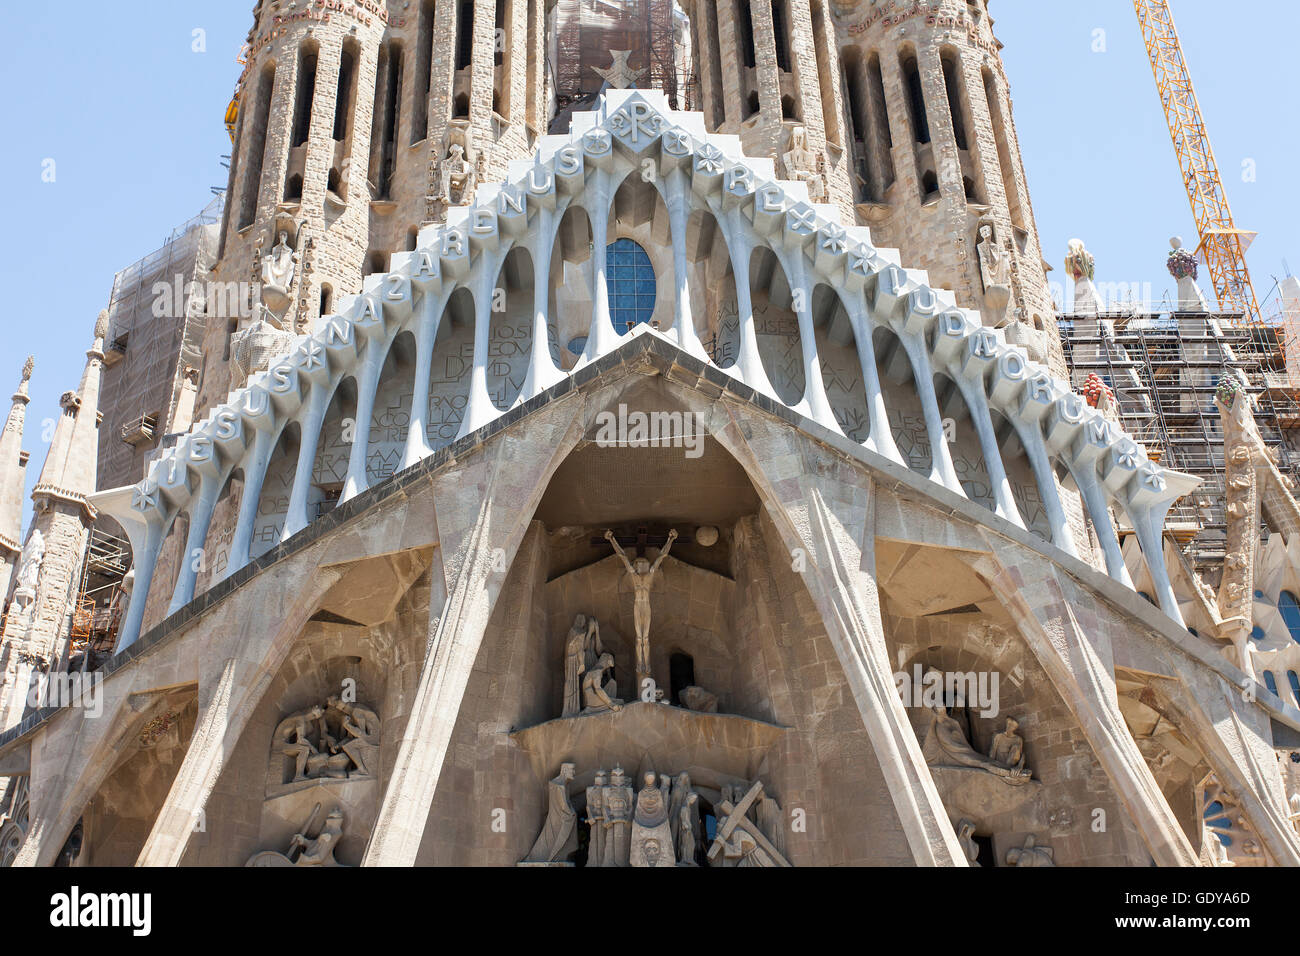 SPAIN Barcelona In Its Unconventional Art And Architecture The Magnanimous Work Of Famous Architect Antoni G